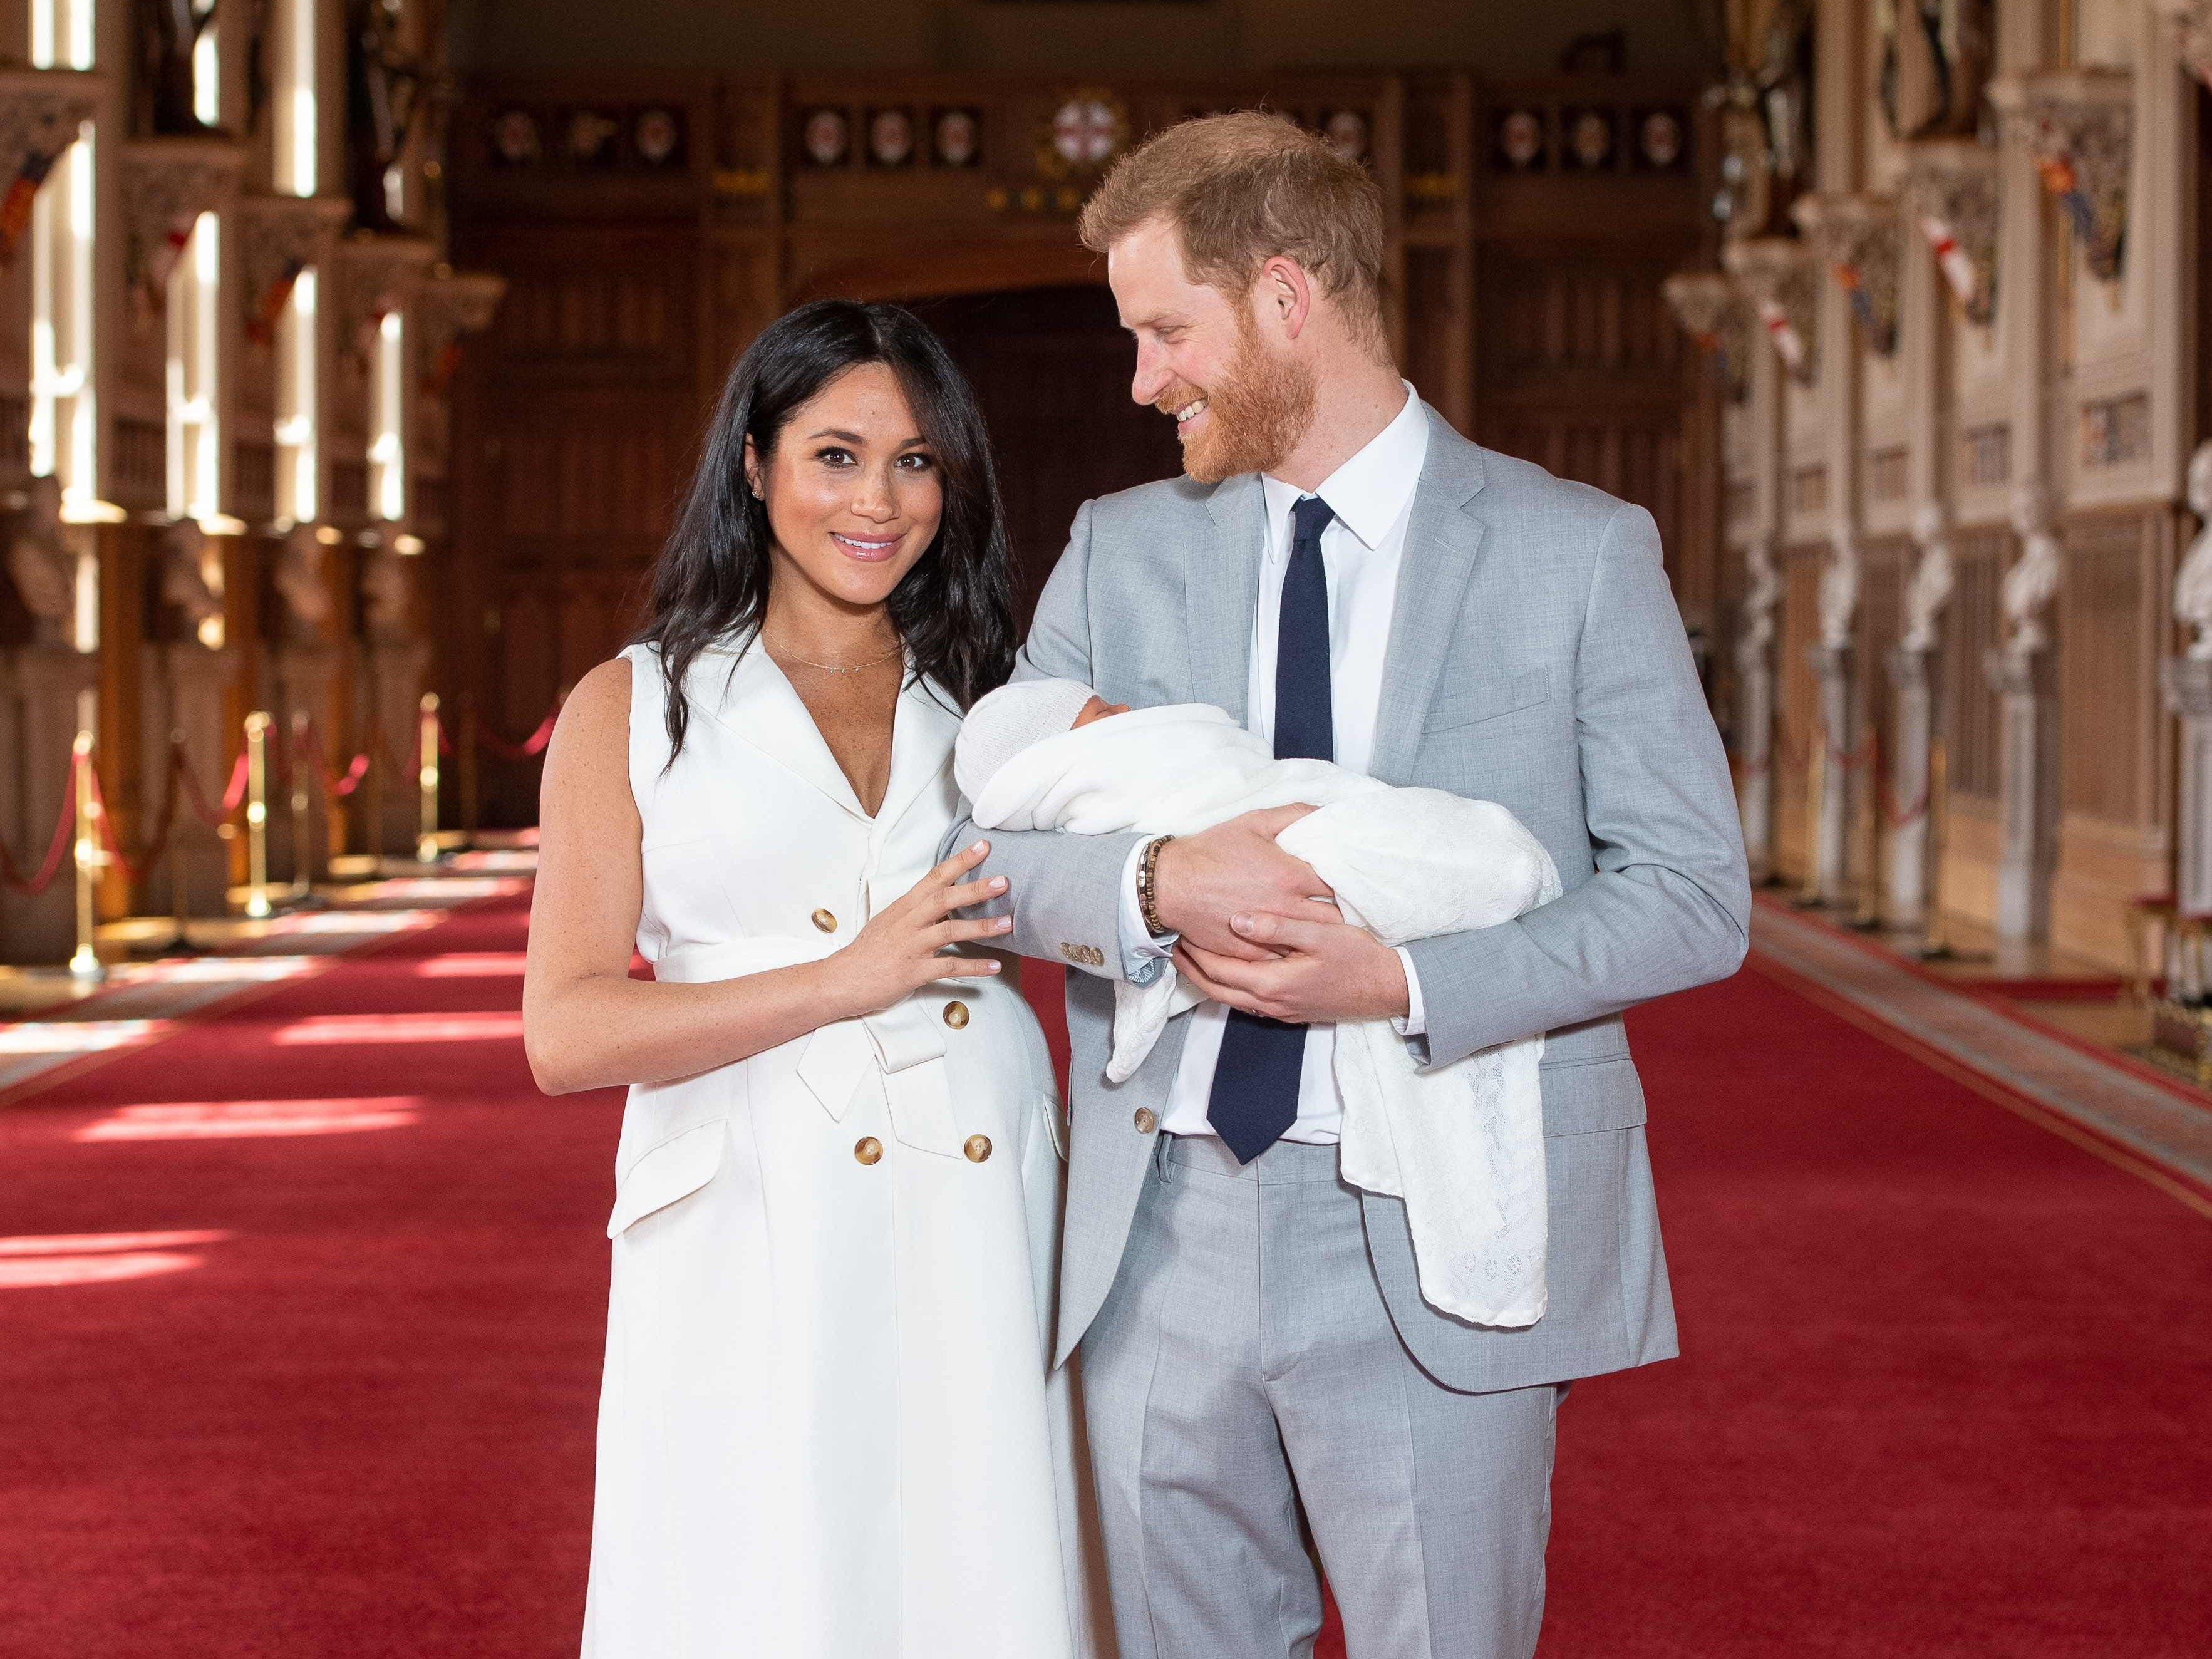 Britain's Prince Harry, Duke of Sussex (R), and his wife Meghan, Duchess of Sussex, pose for a photo with their newborn baby son in St George's Hall at Windsor Castle in Windsor, west of London on May 8, 2019. (Photo by Dominic Lipinski / POOL / AFP)DOMINIC LIPINSKI/AFP/Getty Images ORIG FILE ID: AFP_1GA01F